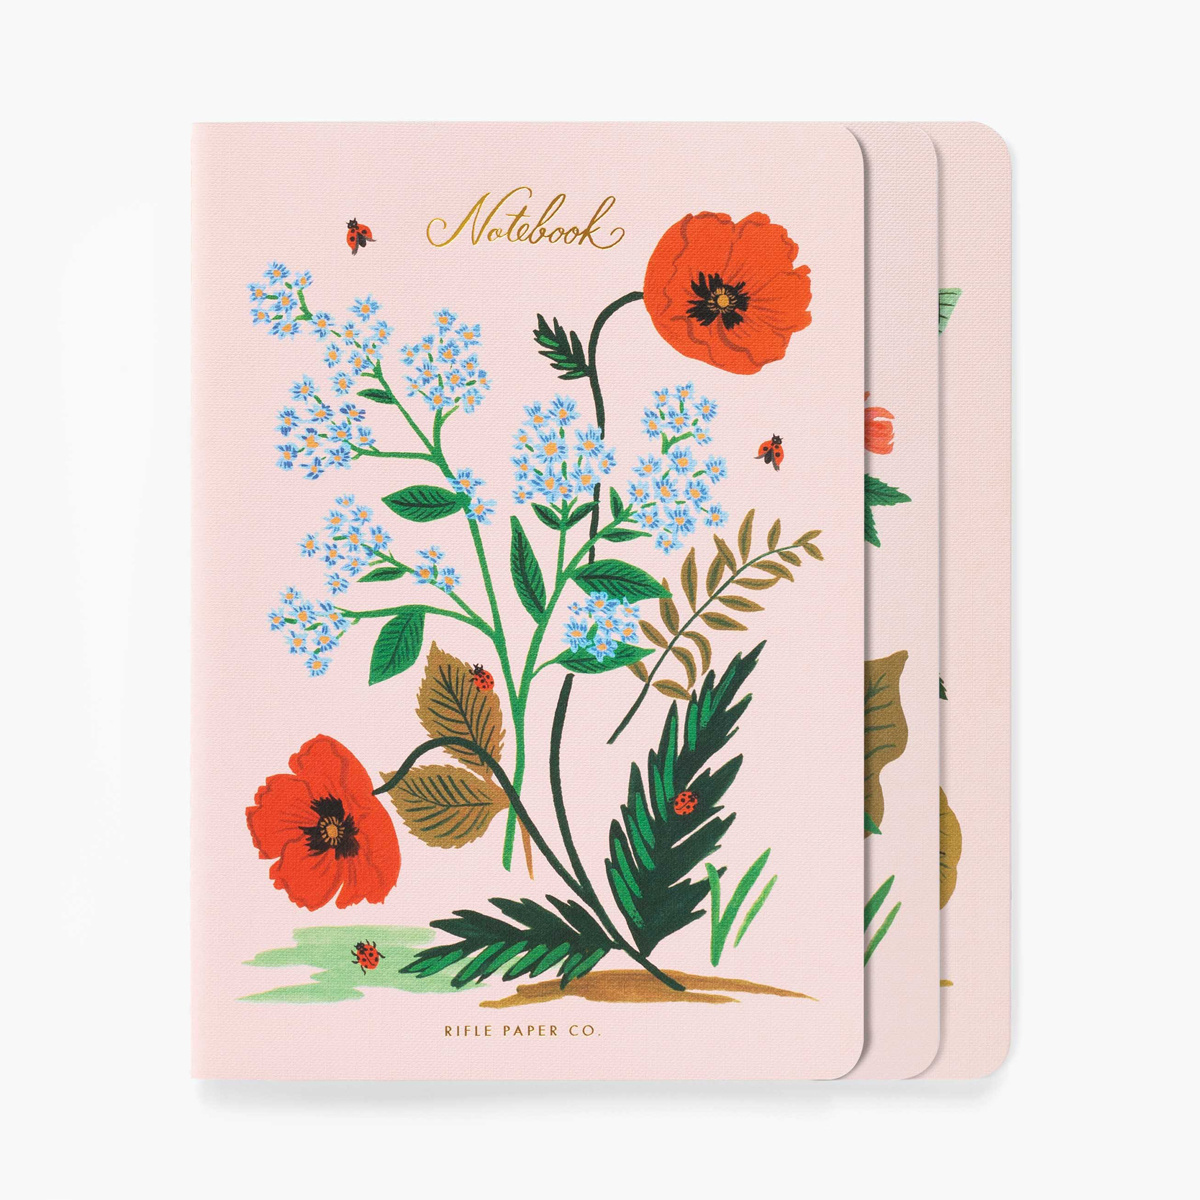 Rifle Paper Co Rifle Paper - Botanical Stitched Notebooks, Set of 3